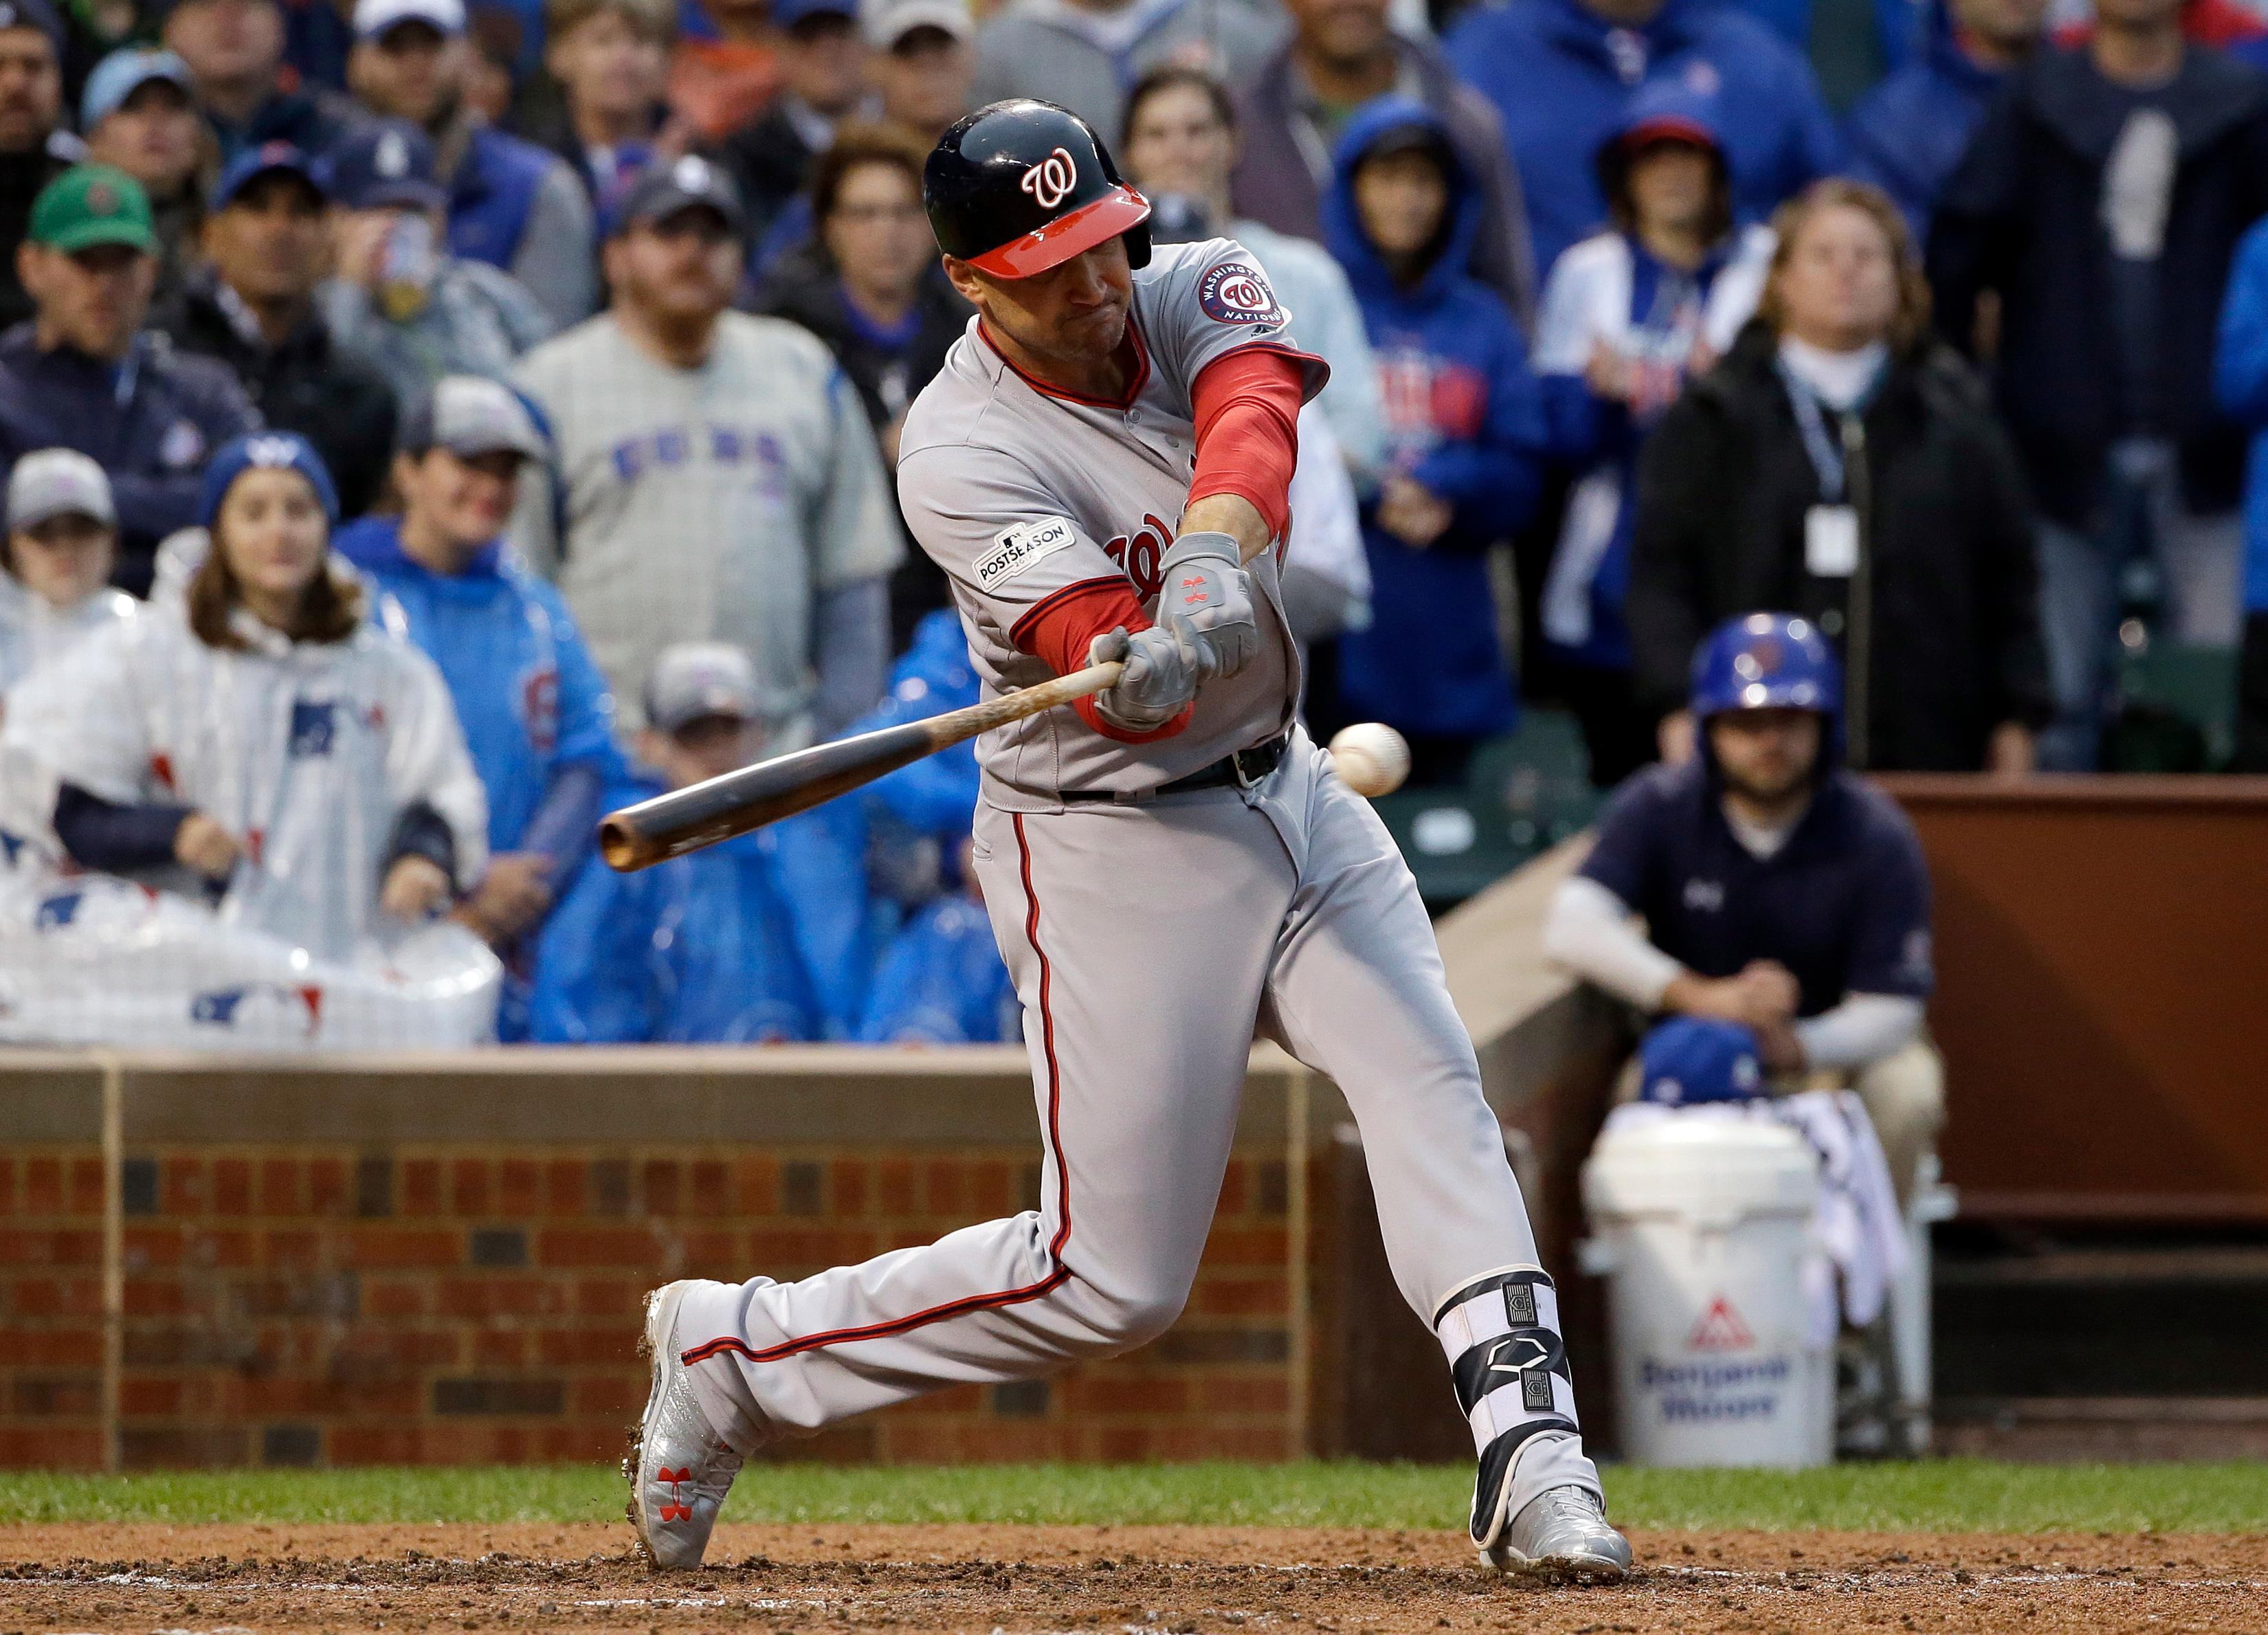 Washington Nationals' Ryan Zimmerman hits as Trea Turner scores a run on a fielding error by Chicago Cubs' Addison Russell Chicago during the third inning of Game 4 of baseball's National League Division Series, Wednesday, Oct. 11, 2017, in Chicago. (AP Photo/Nam Y. Huh)